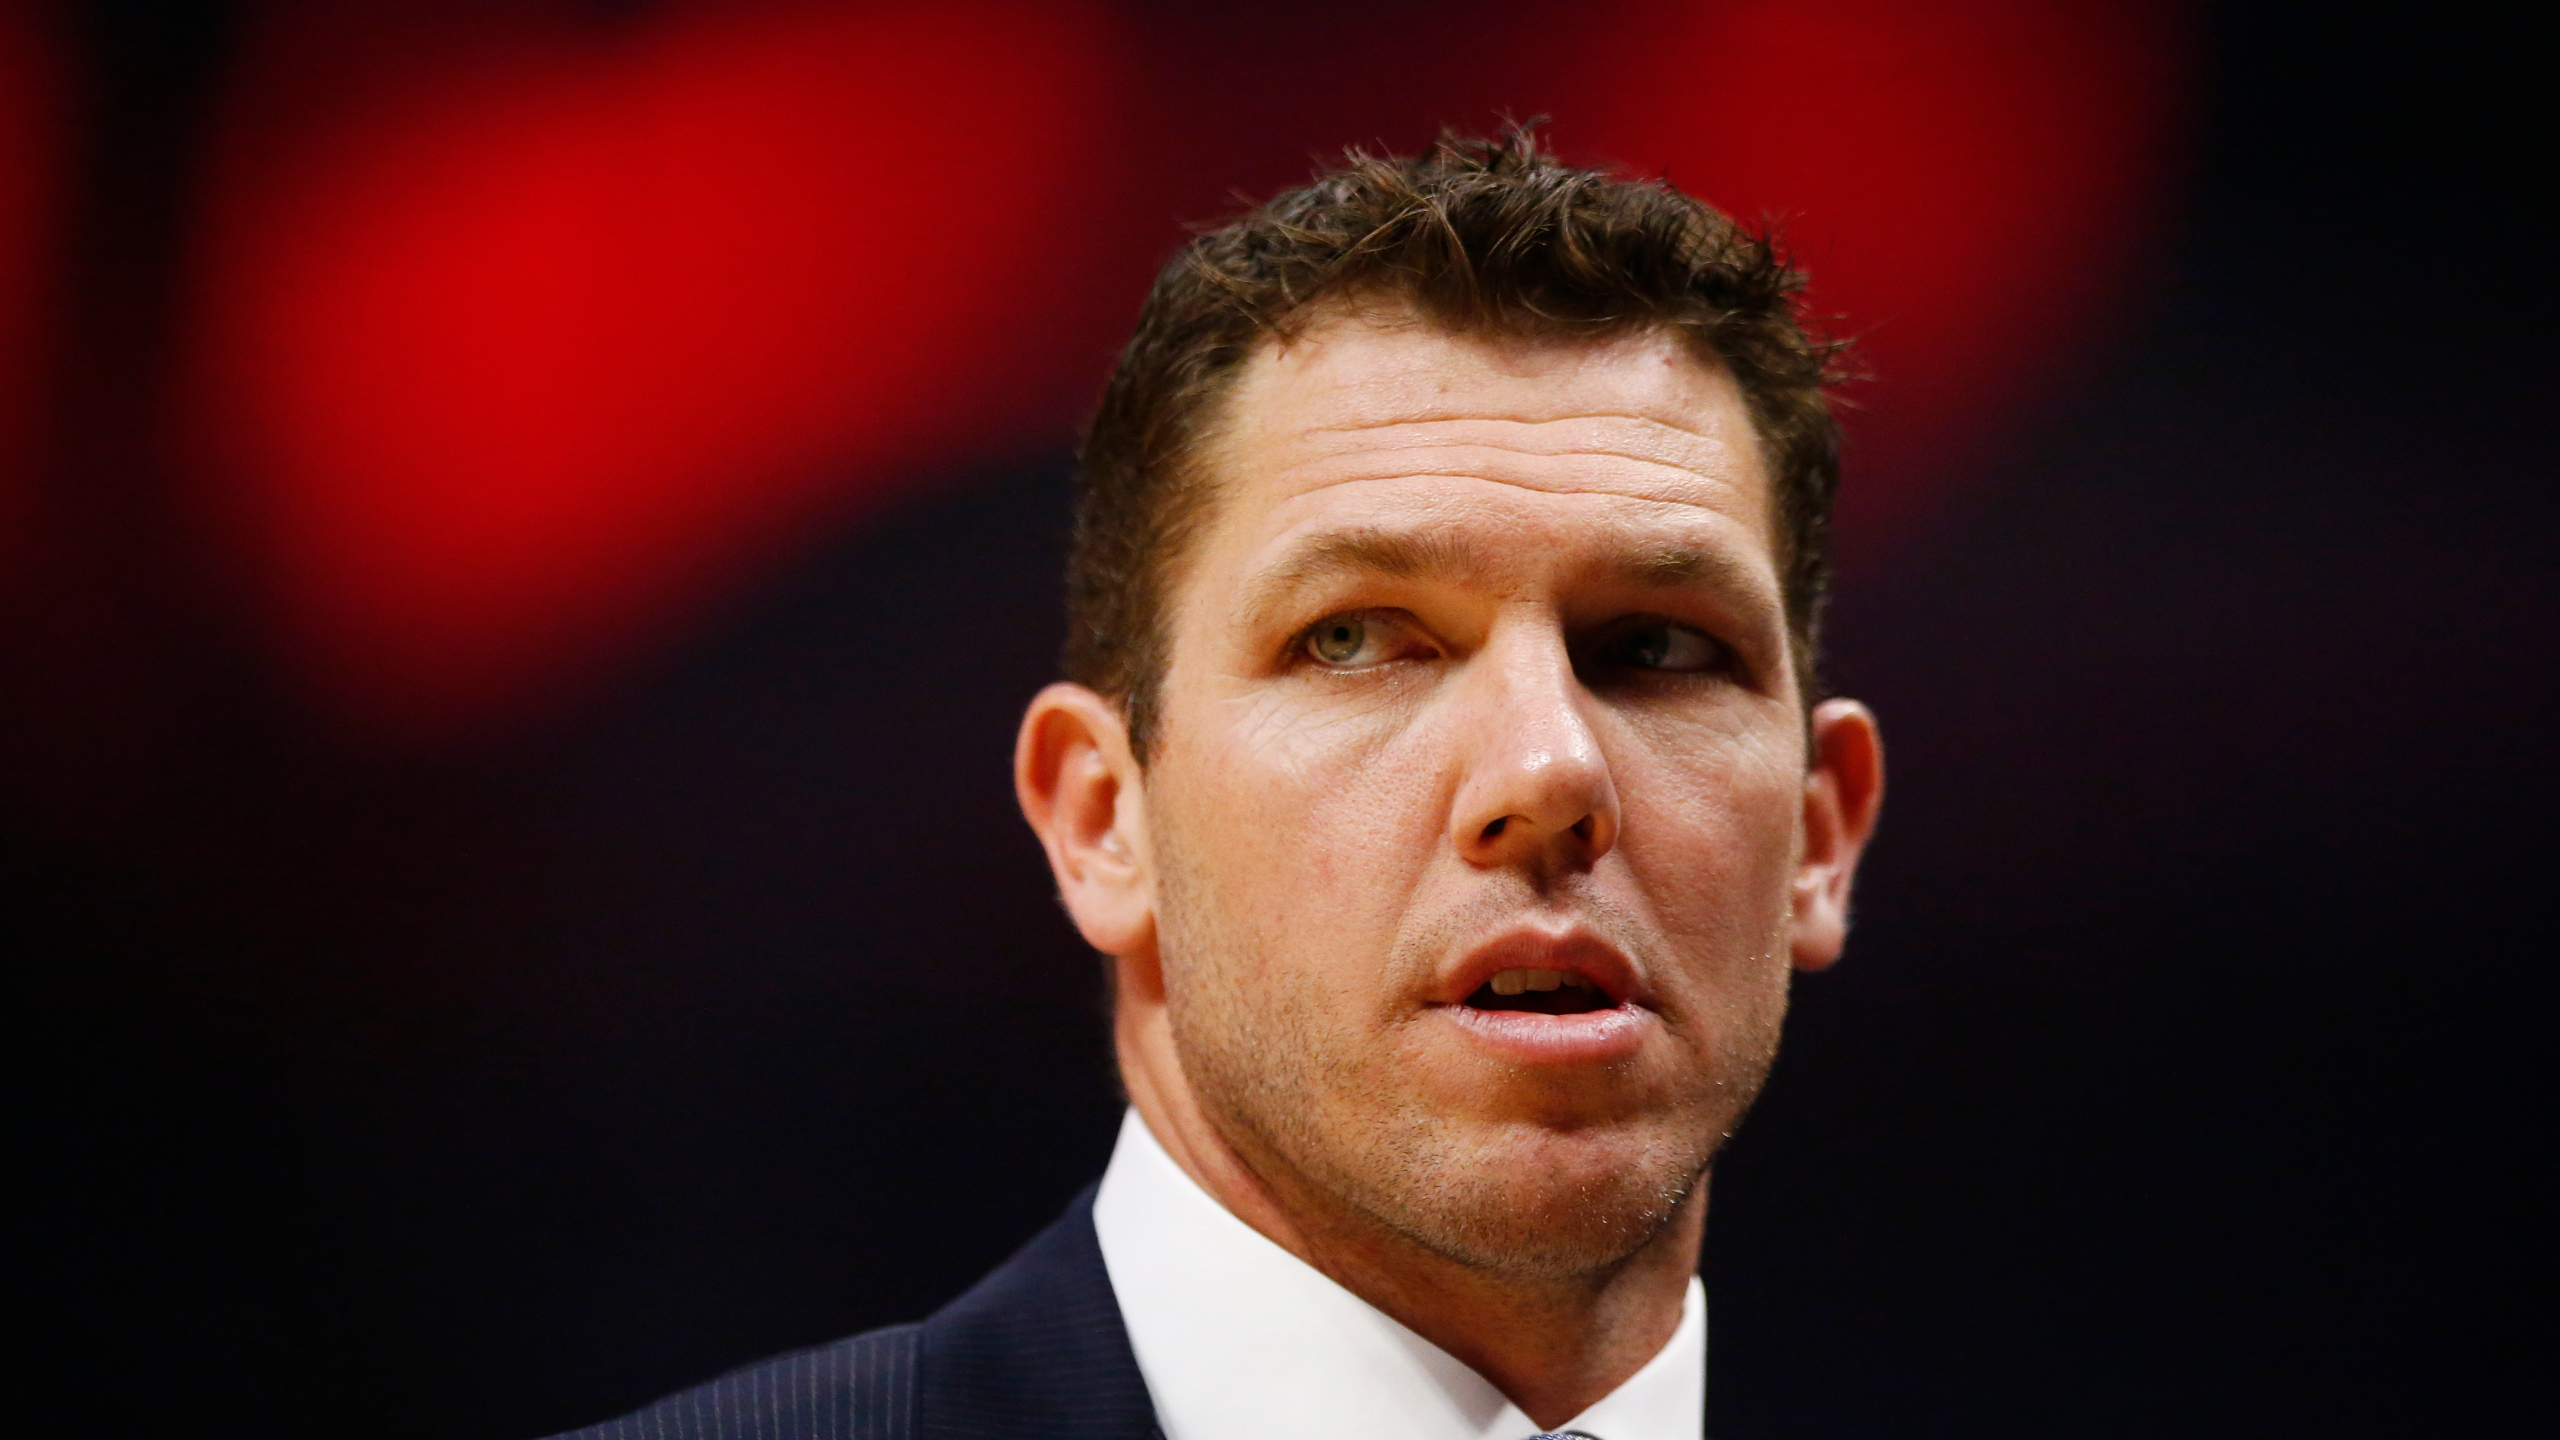 Lakers coach Luke Walton looks on during the first half of the game against the Los Angeles Clippers at Staples Center on April 05, 2019. (Credit: Yong Teck Lim/Getty Images)